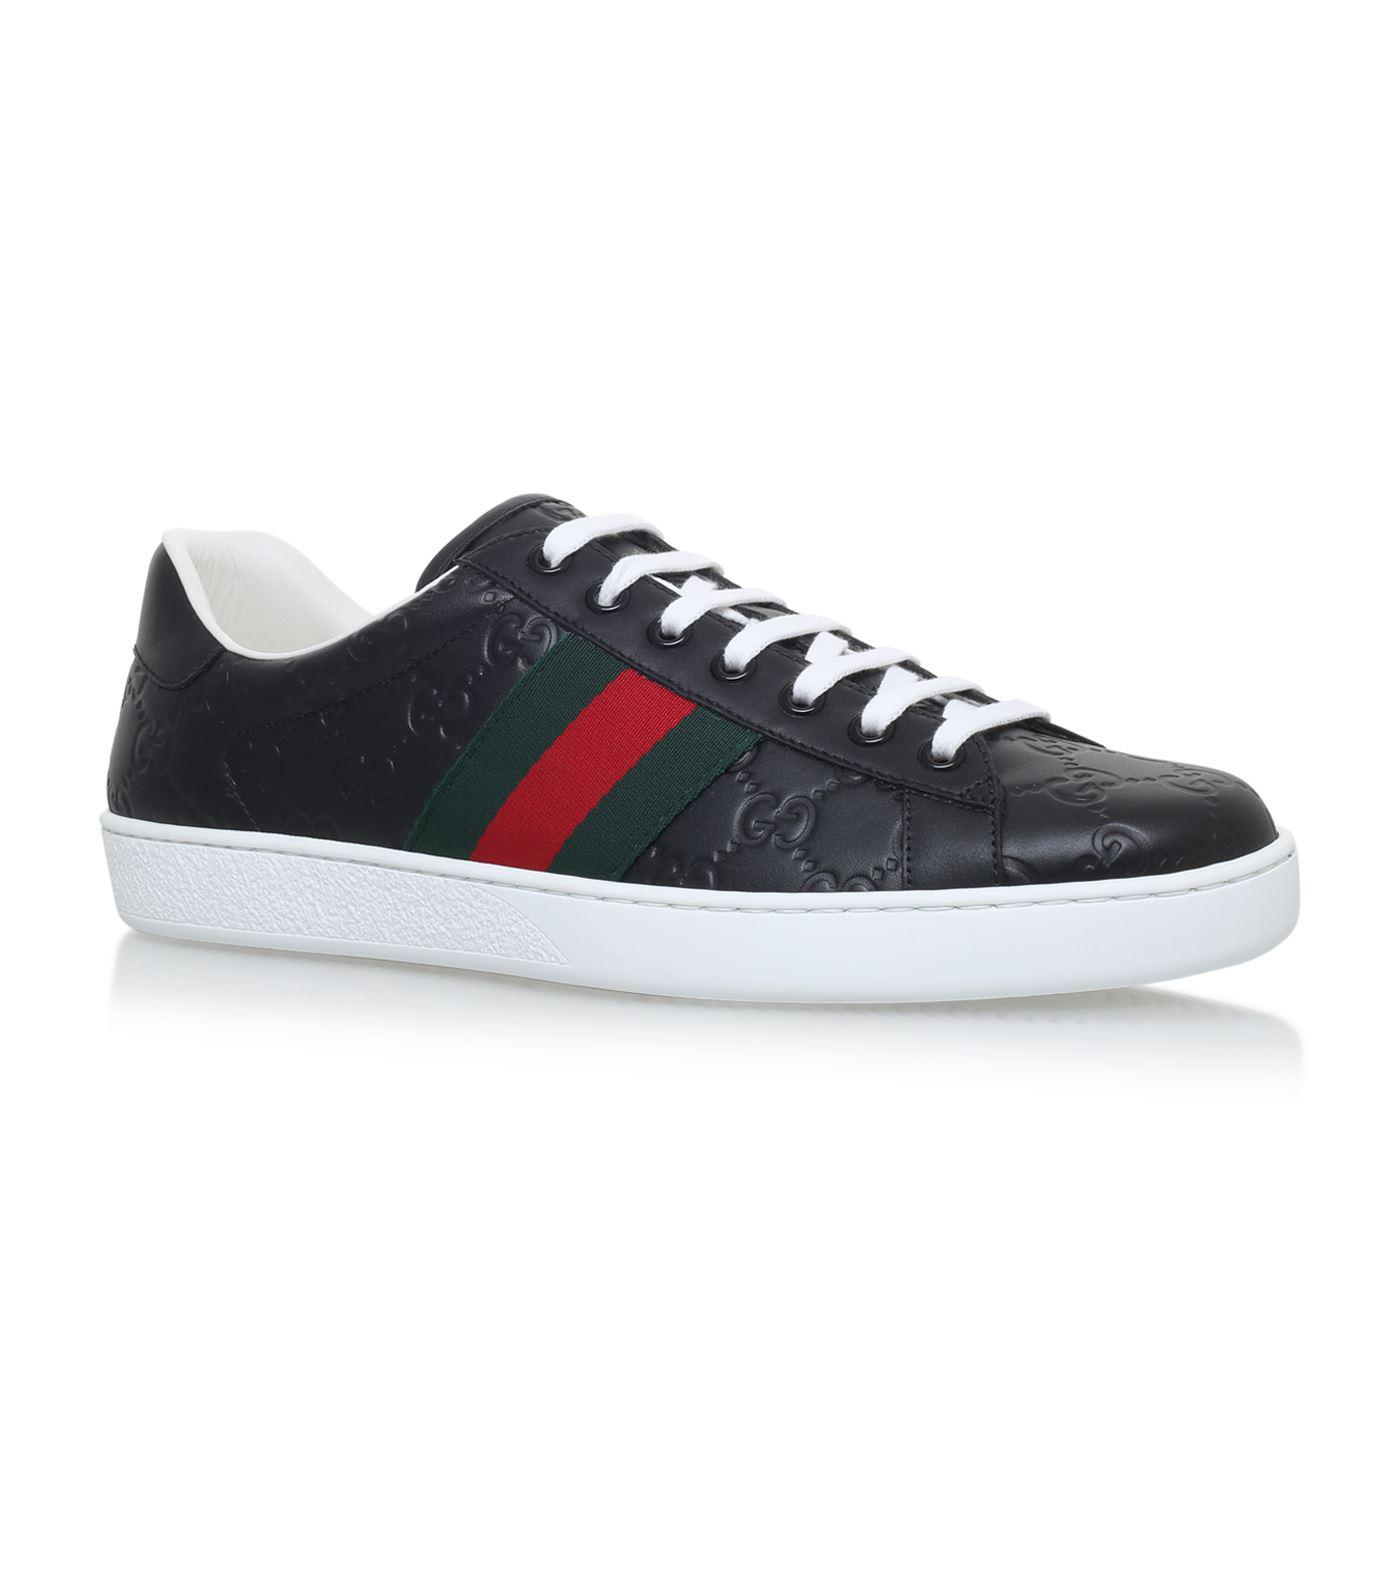 3dff3973014 Gucci - Blue New Ace Logo Sneakers for Men - Lyst. View fullscreen